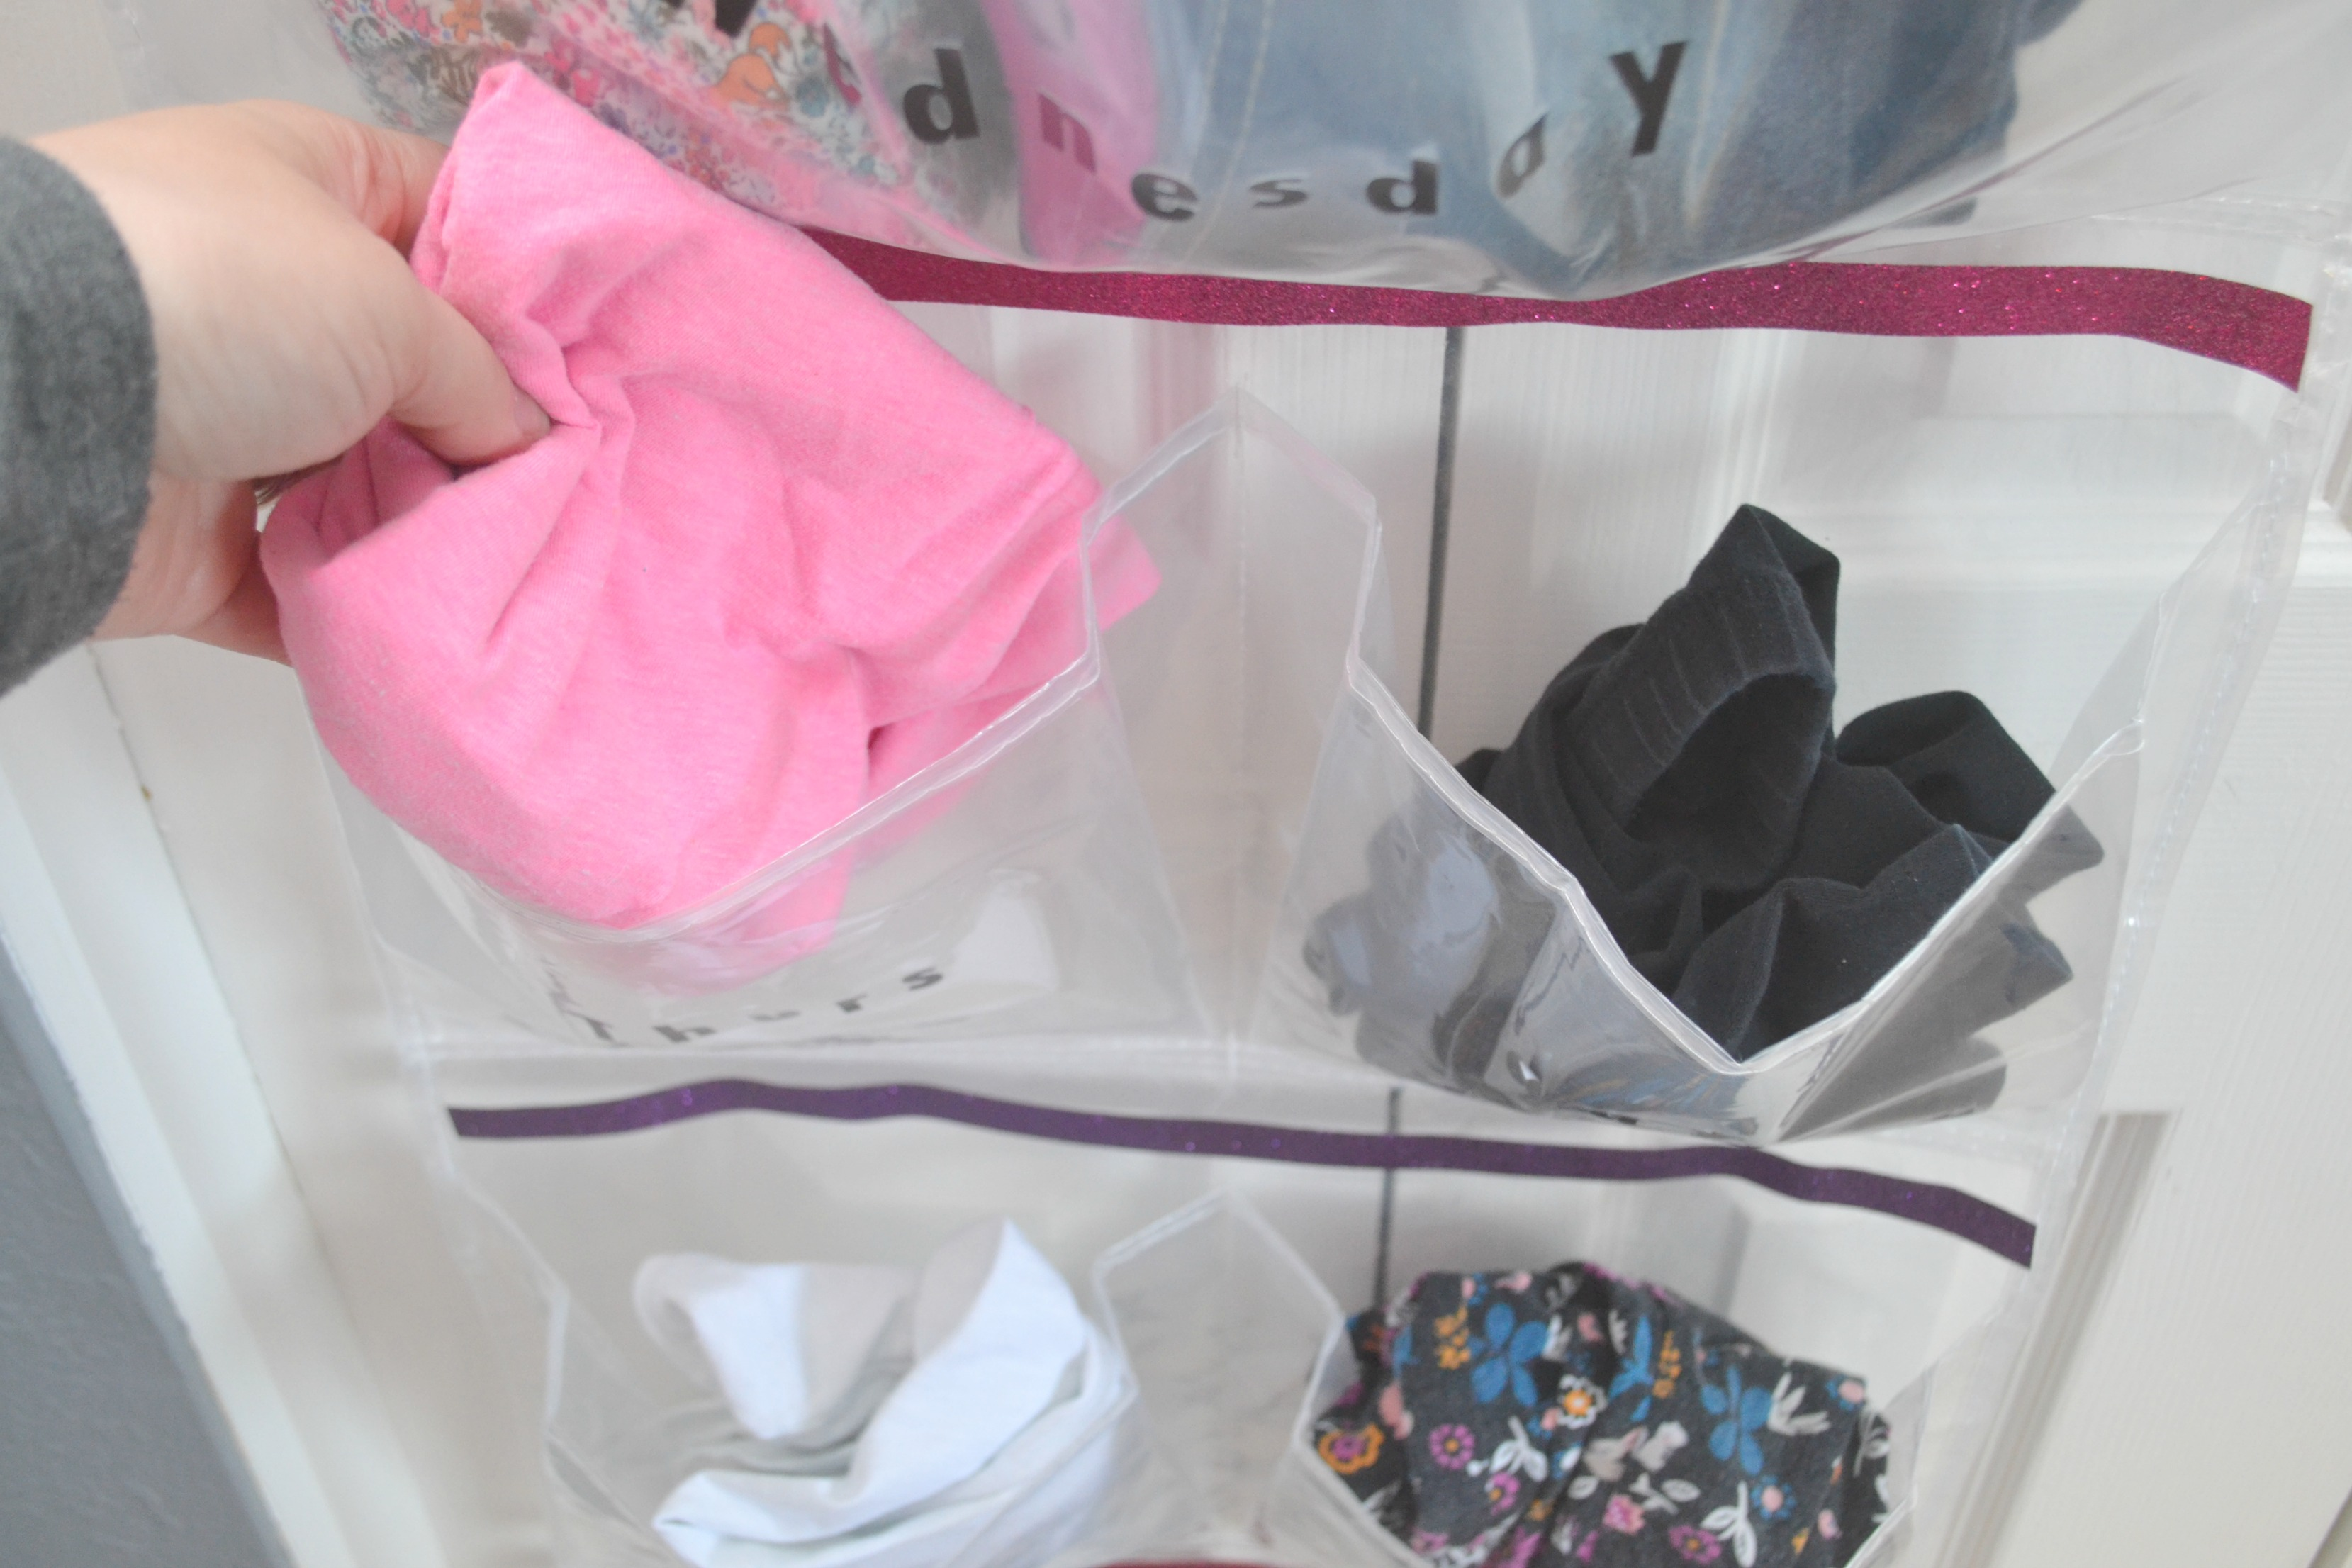 Weekly Outfit Organizer, DIY Weekly Outfit Organizer, Weekly Outfit Organizer for kids, Weekly Outfit Organizer DIY, easy diy Weekly Outfit Organizer for kids, make your own Weekly Outfit Organizer, outfit organizer for kids